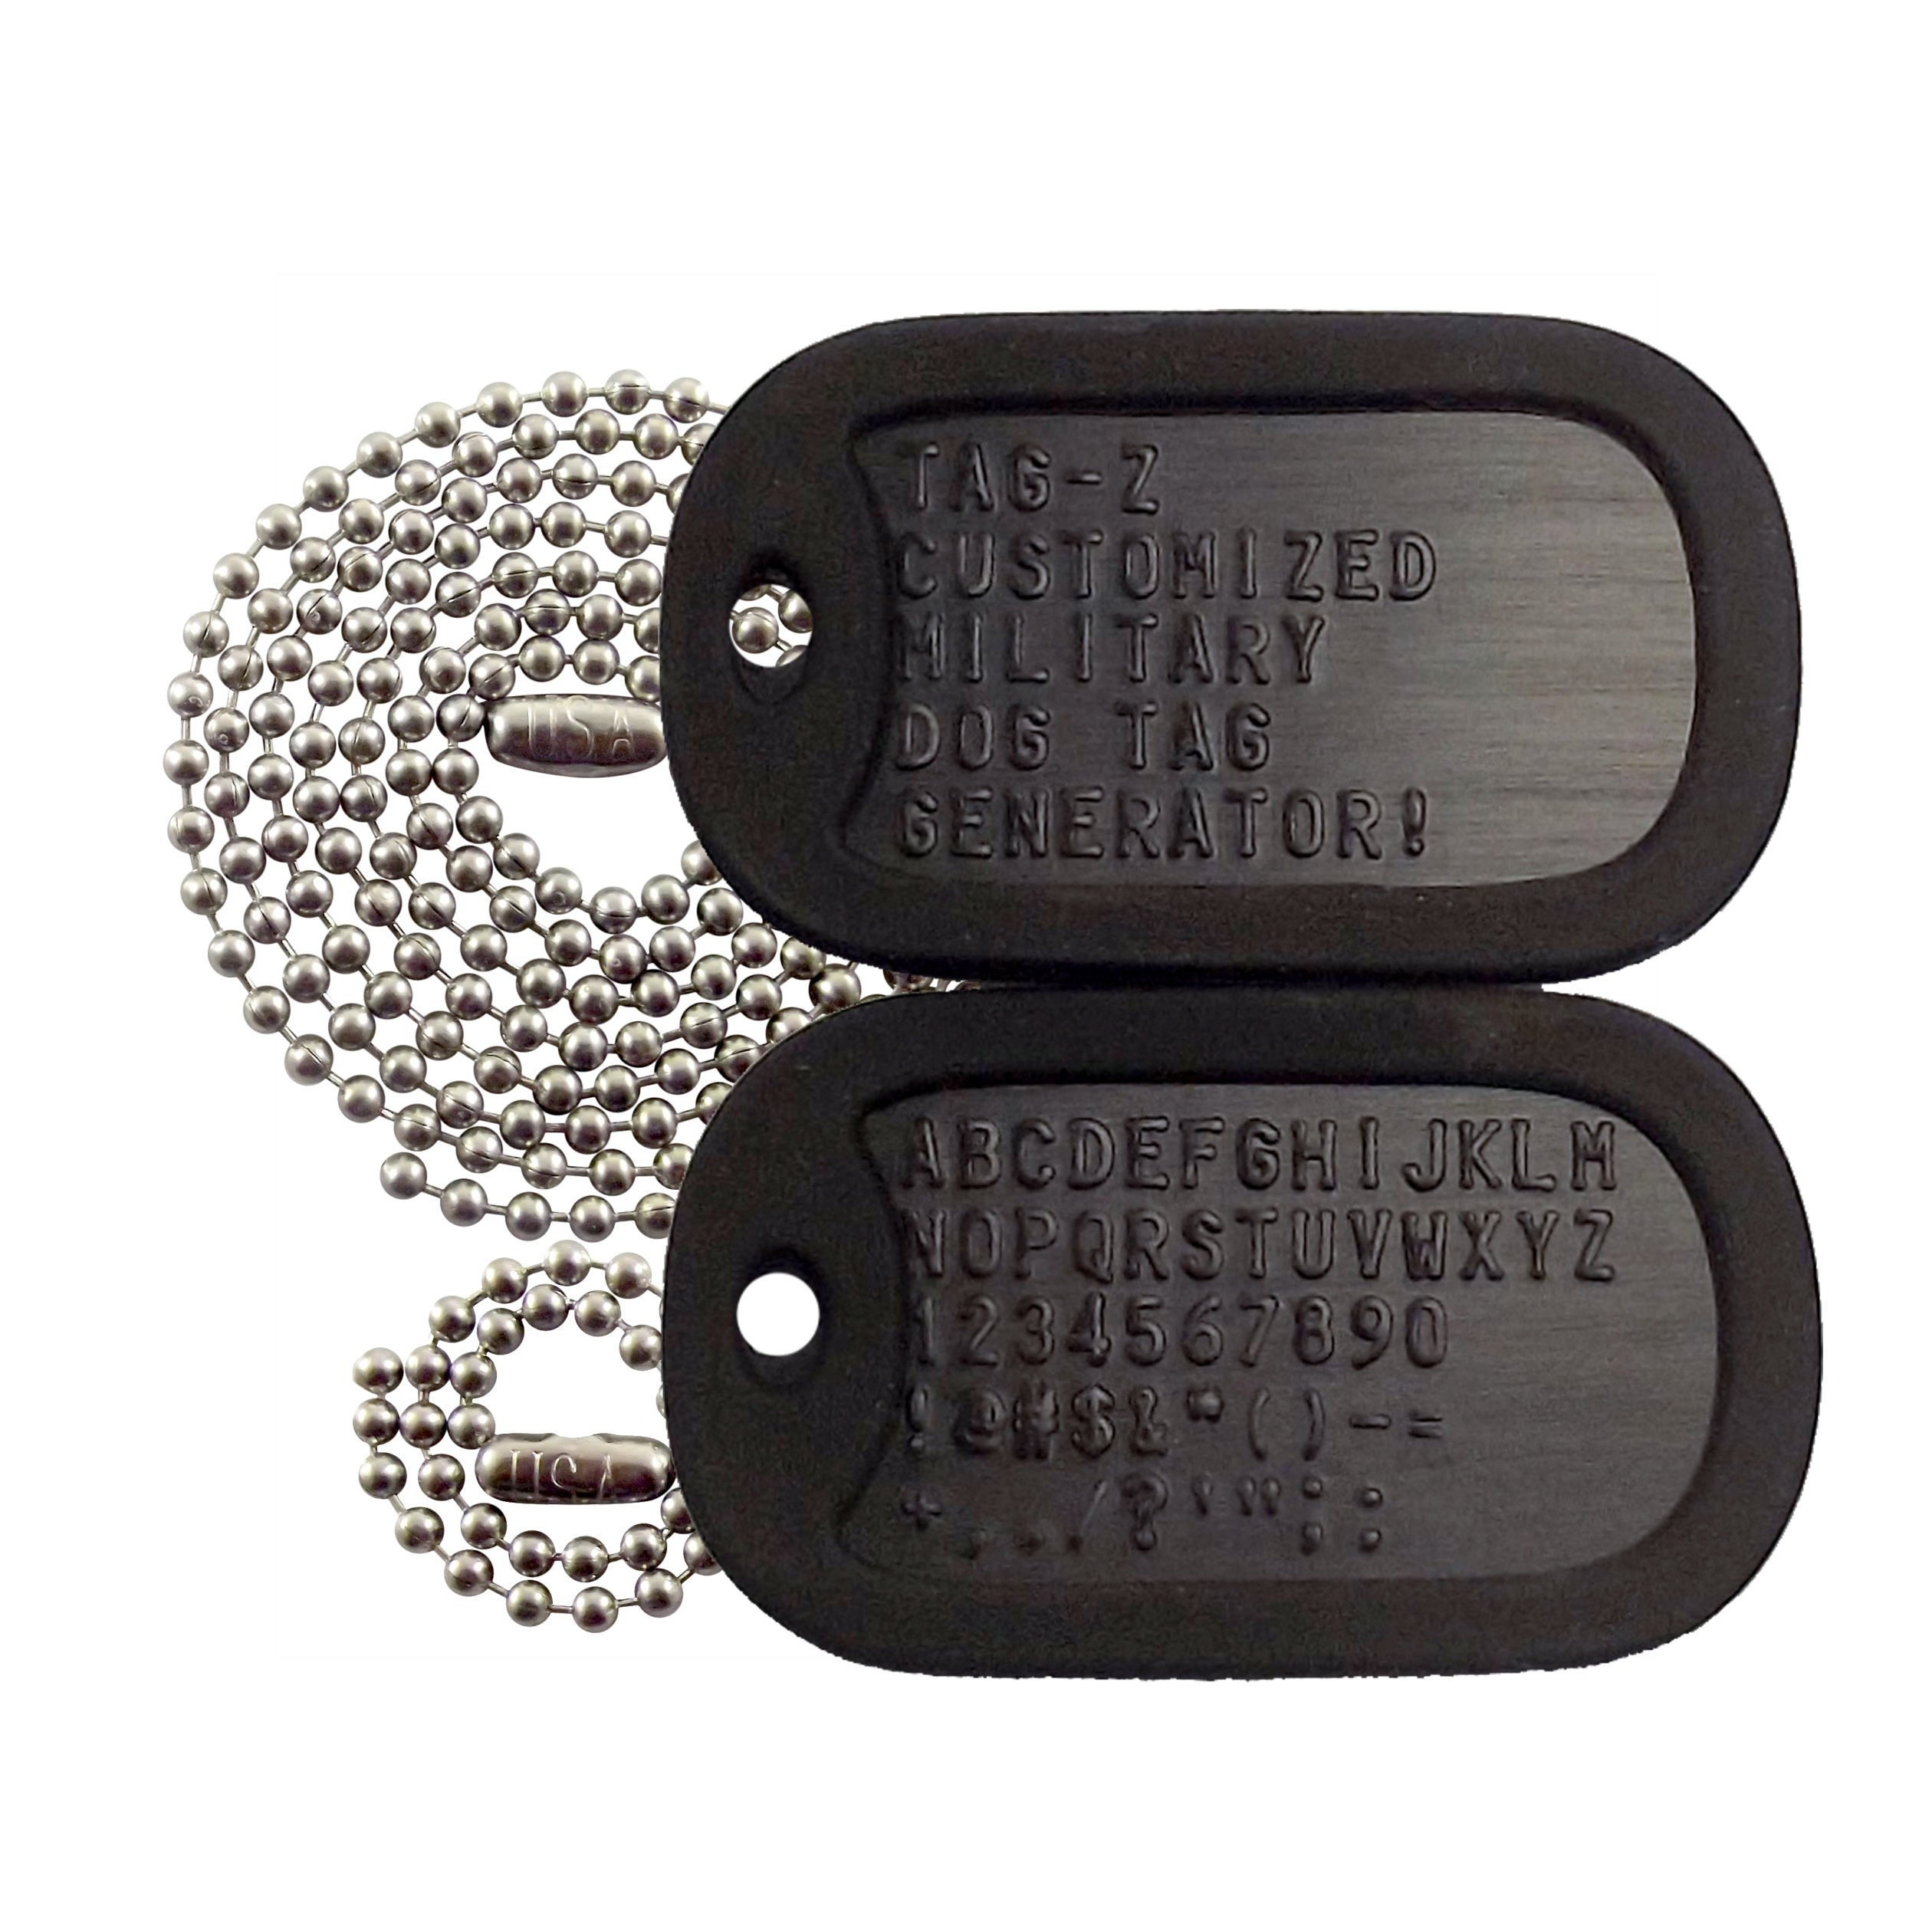 Personalized Military Dog Tags - 10 Tag Colors & 39 Silencers to choose from!